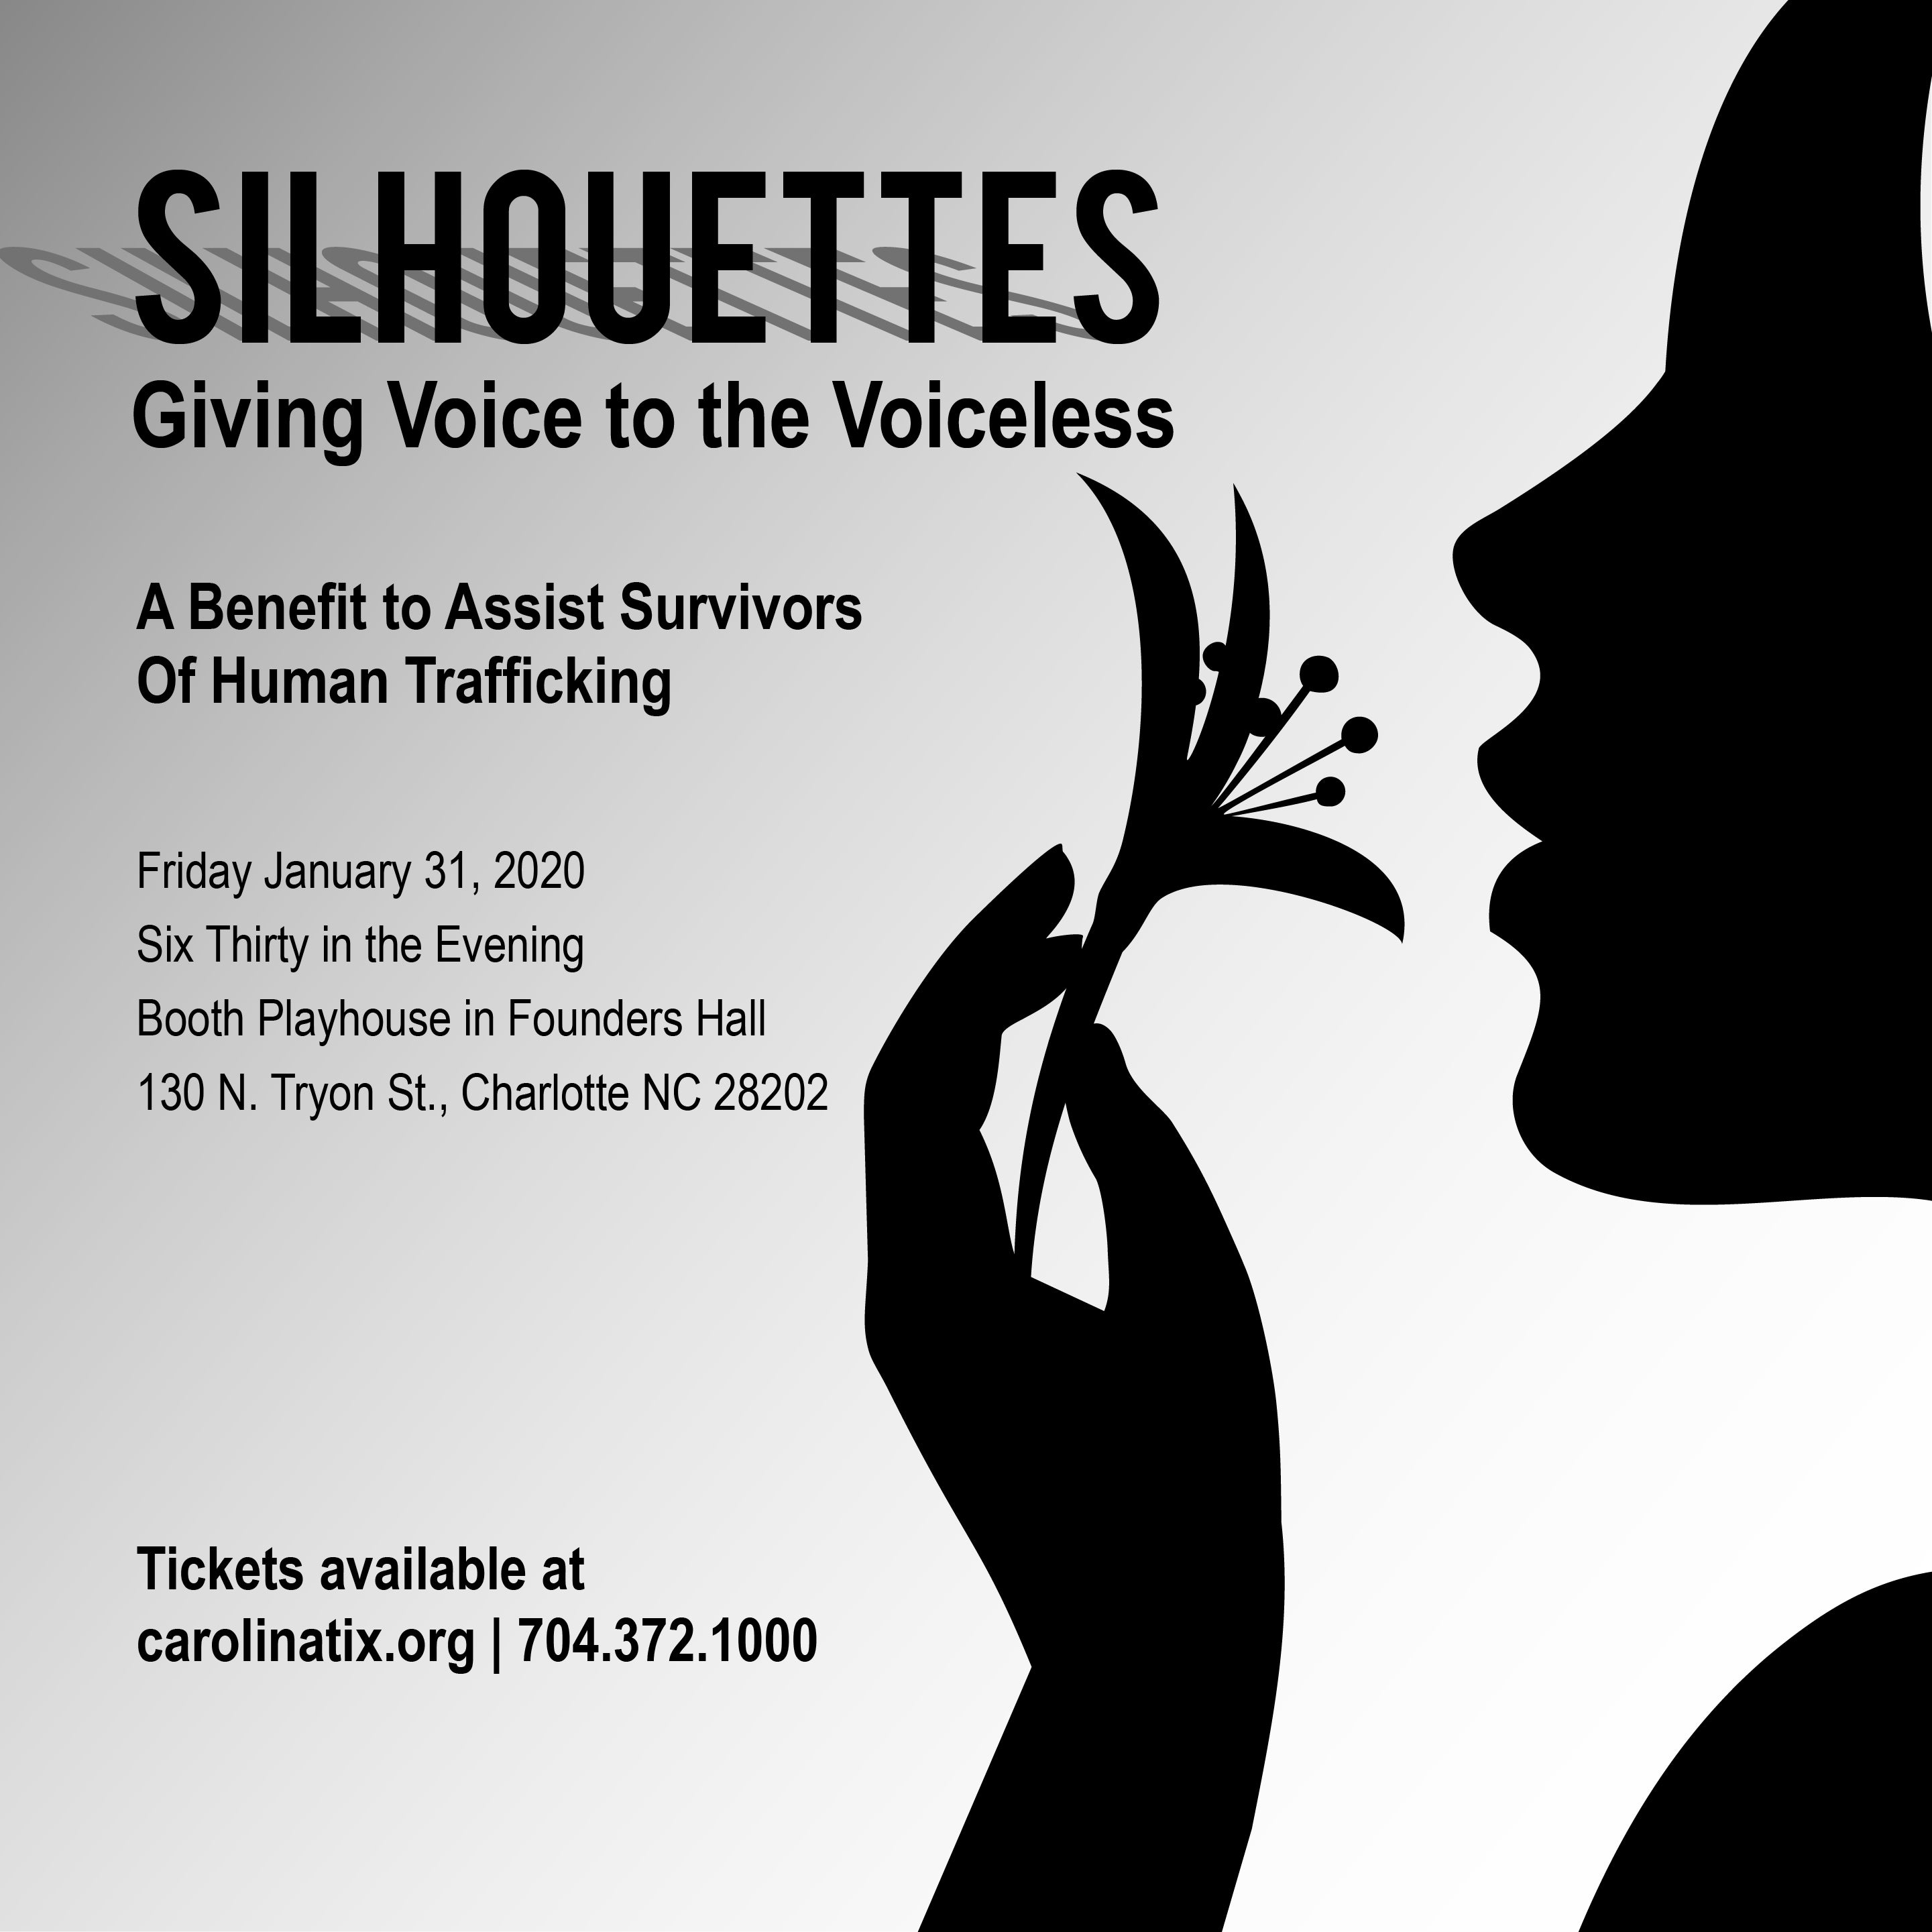 SILHOUETTES: Giving Voice to the Voiceless